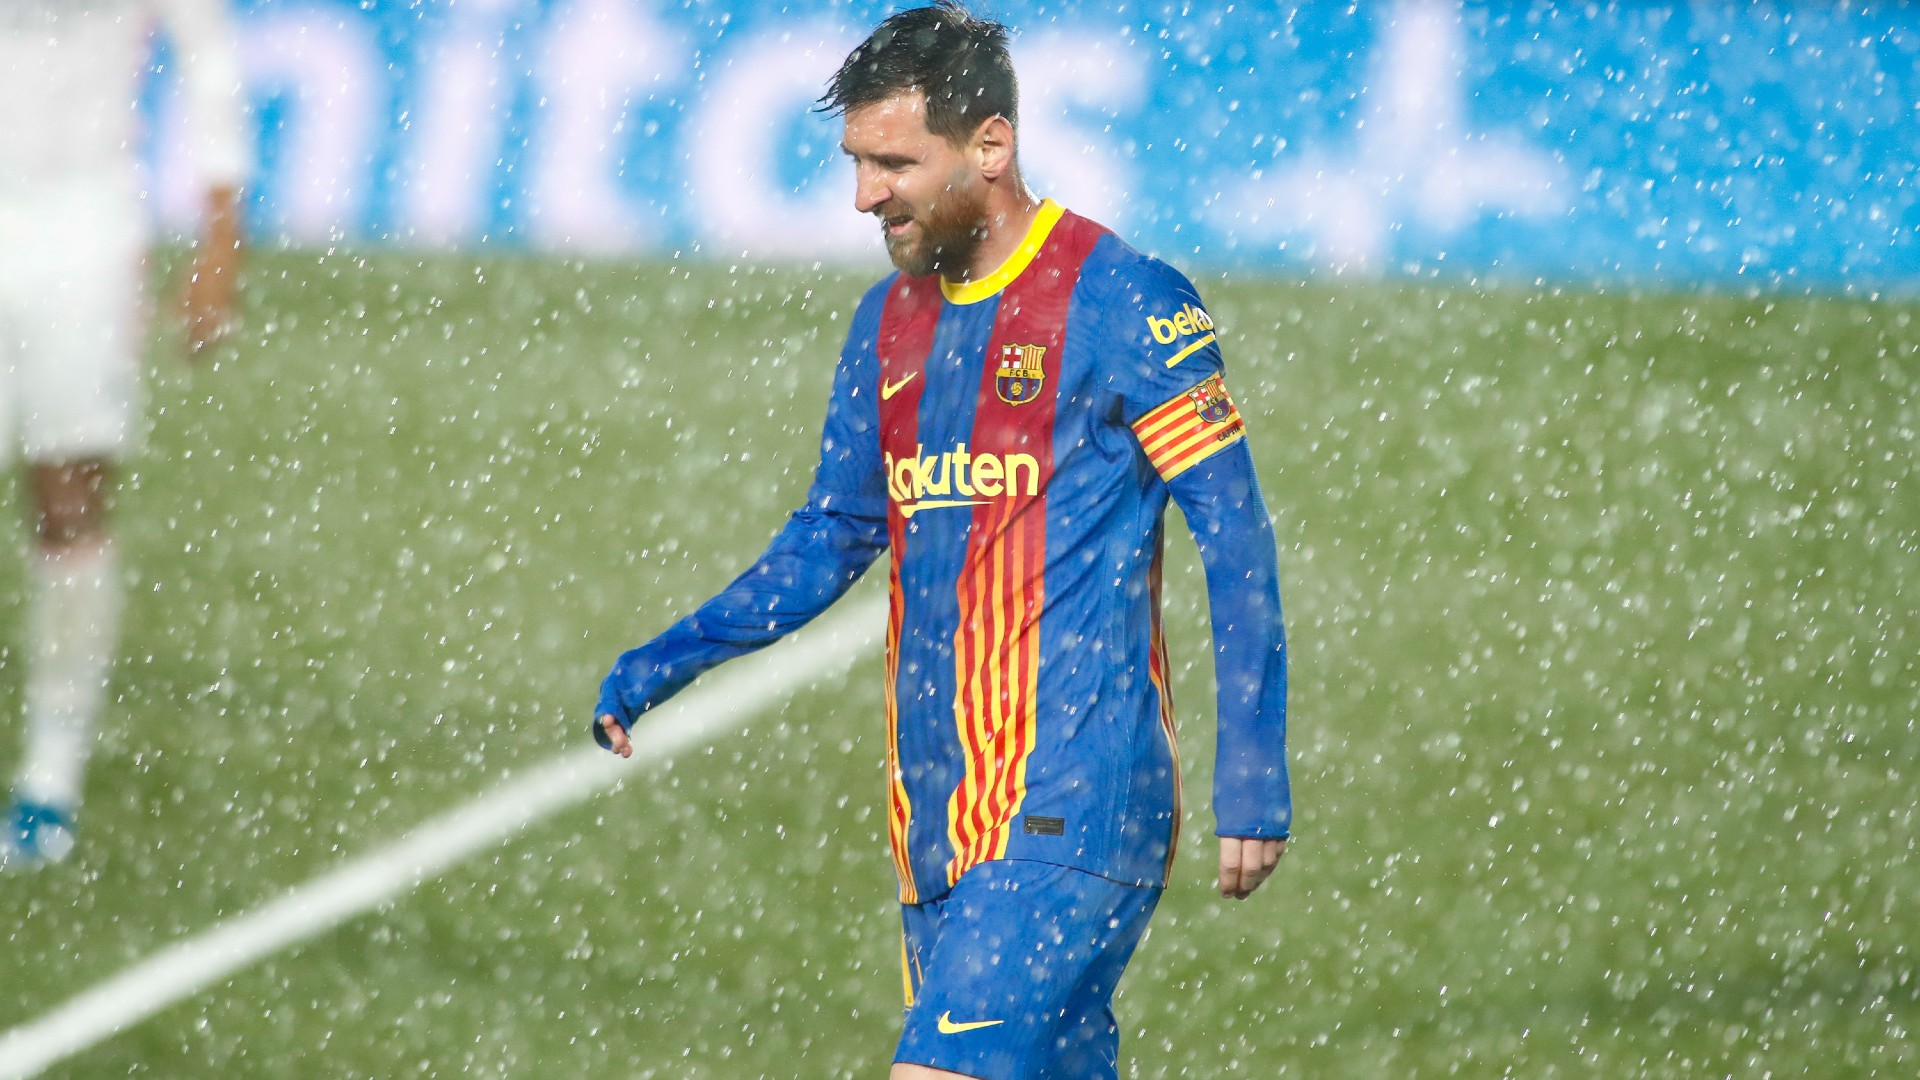 Barcelona hopeful Lionel Messi hasn't played his last Clasico after Madrid loss